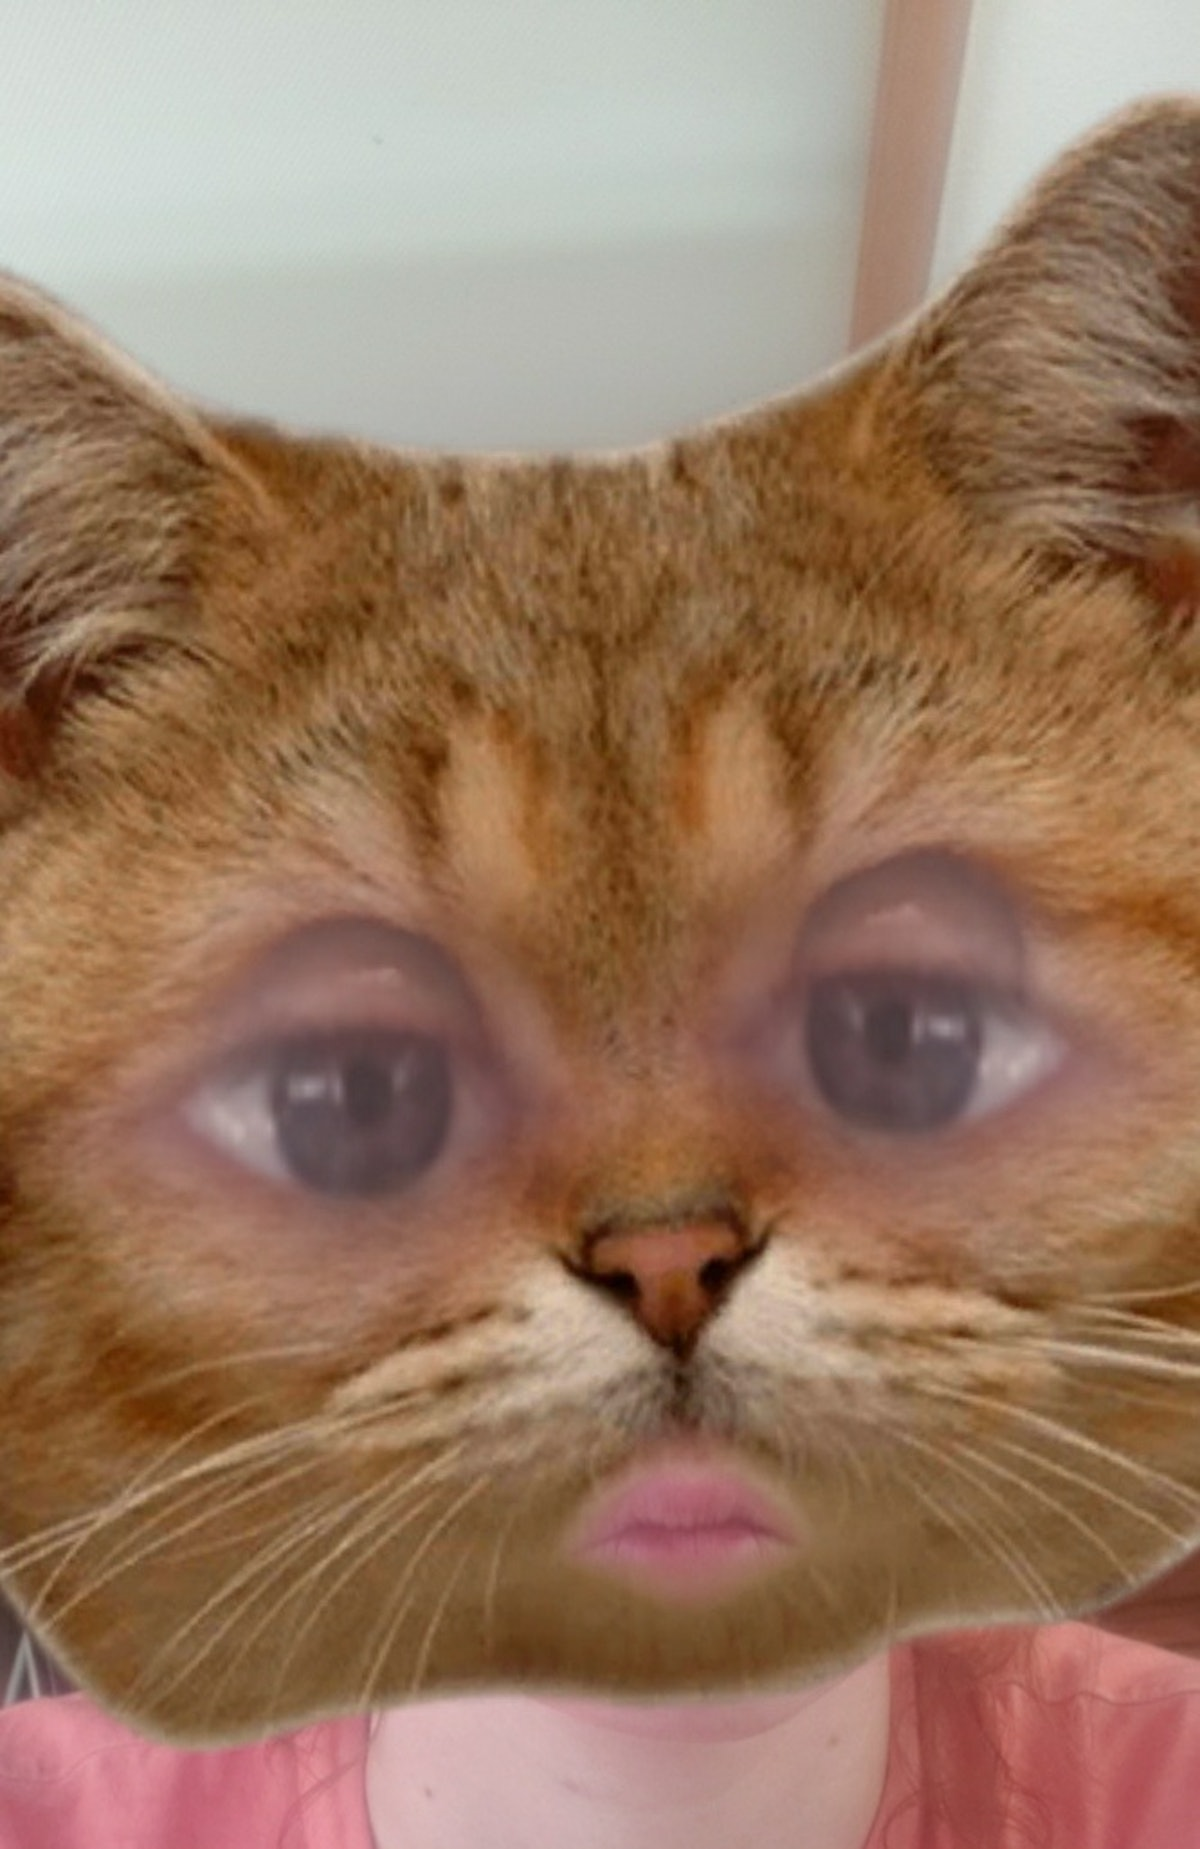 You can get a cat face filter on Snapchat from a few Lens creators.